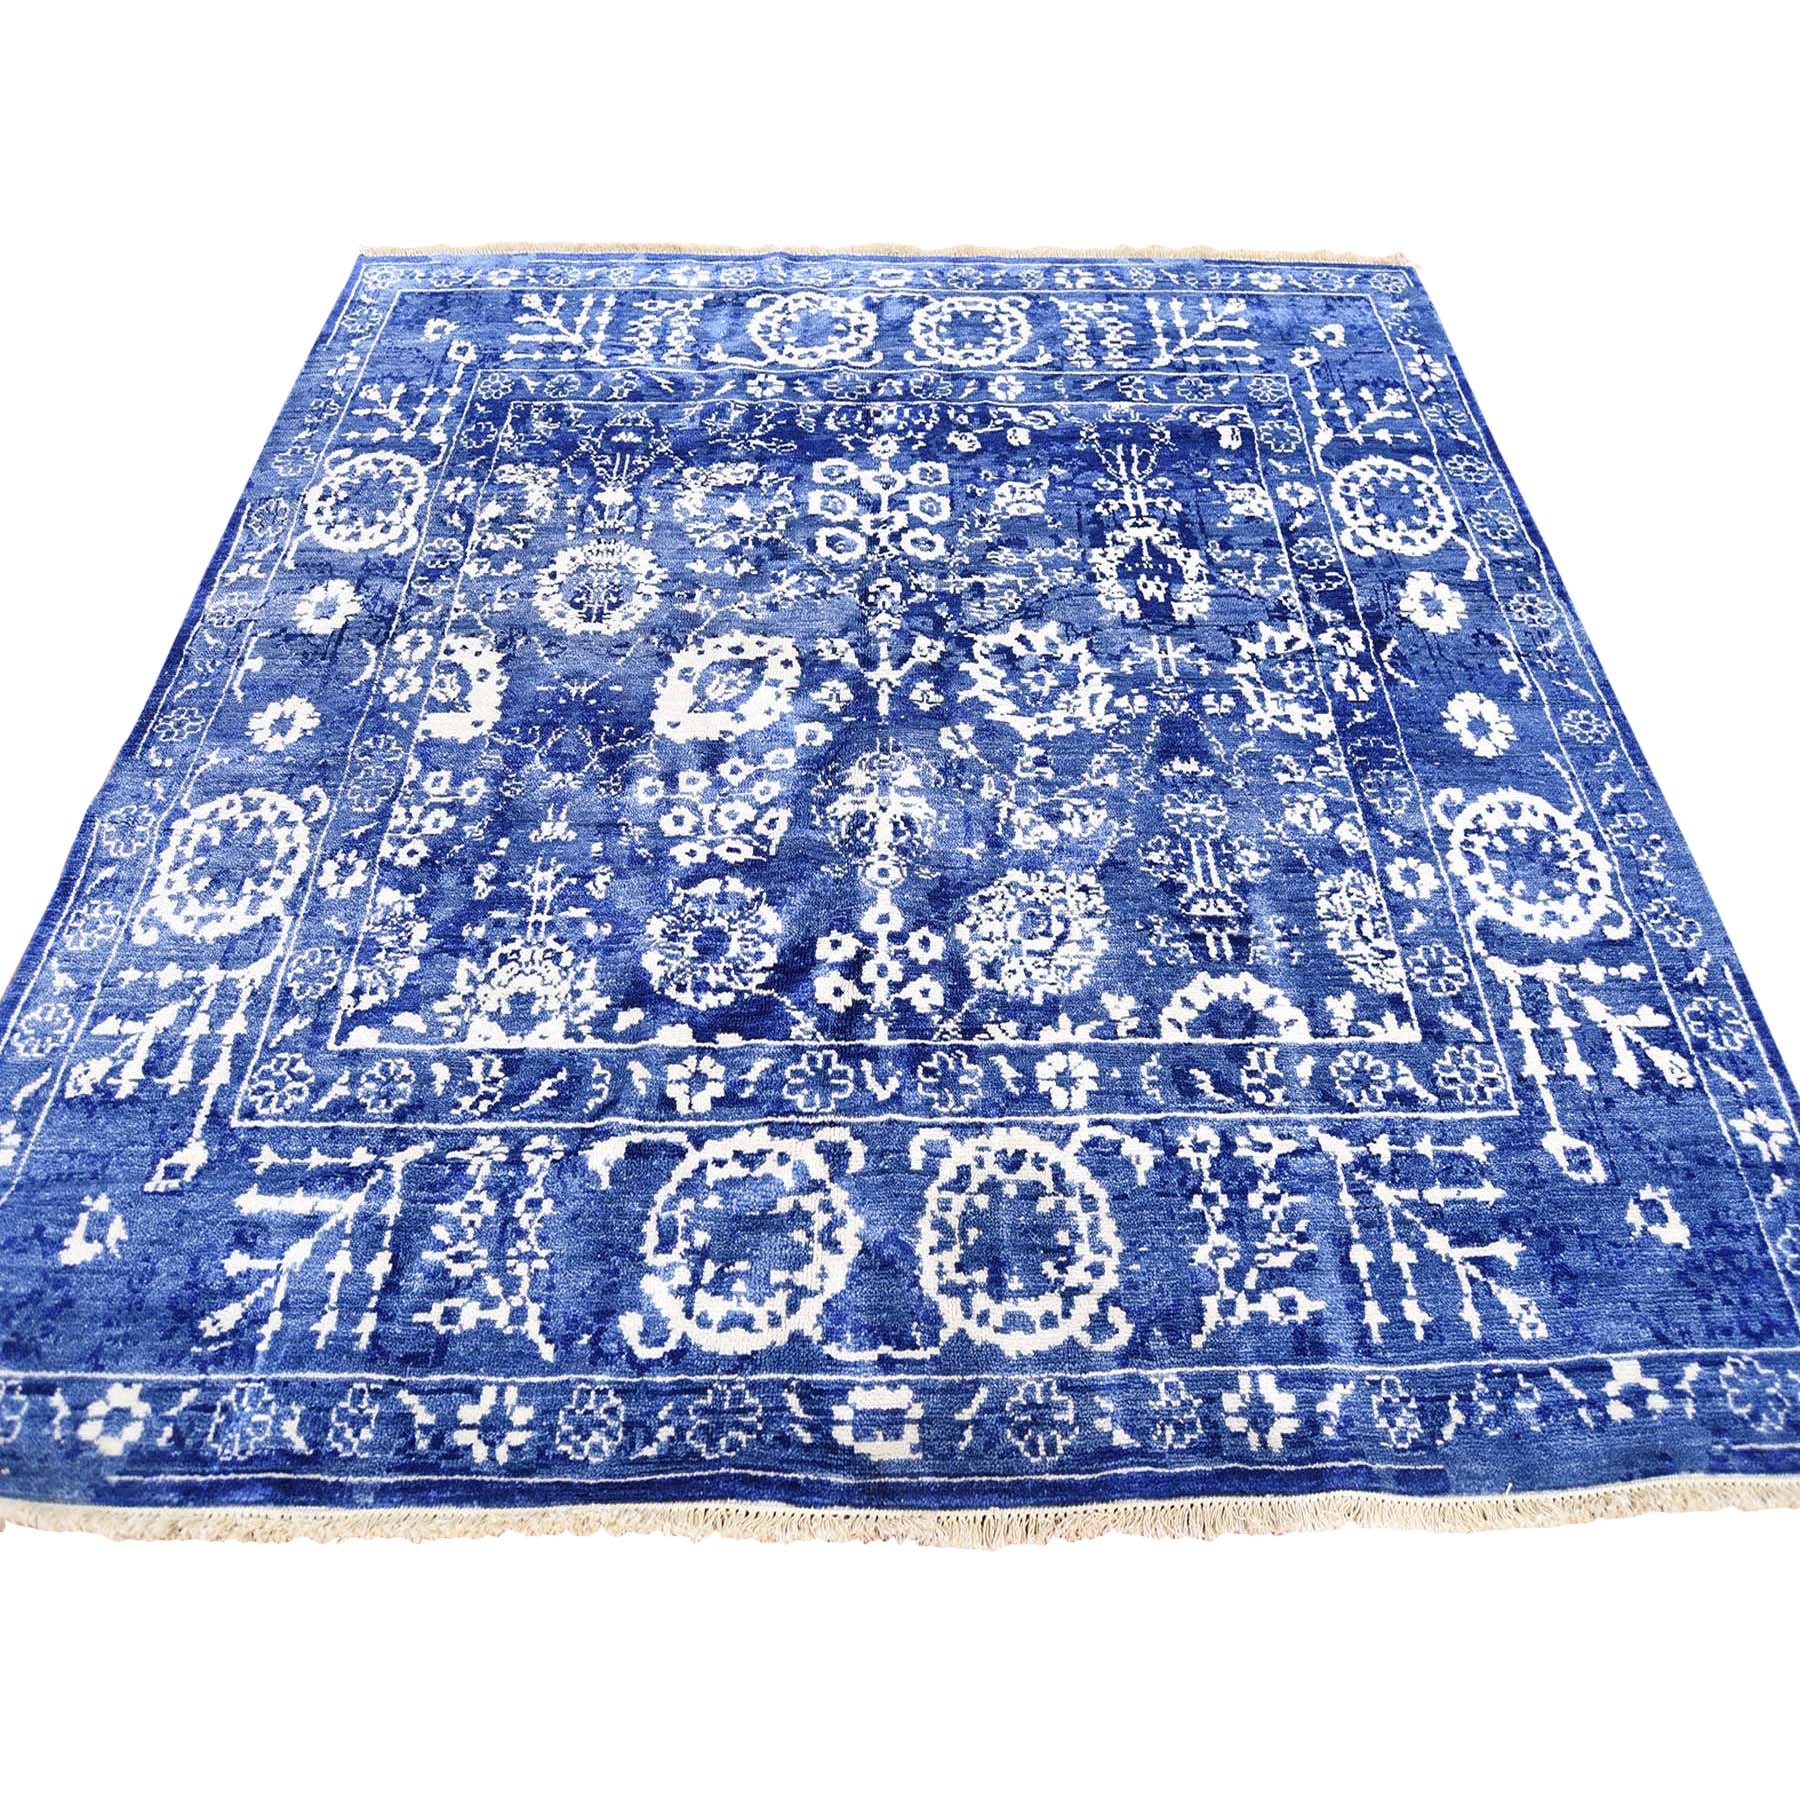 modern & contemporary rugs LUV373473